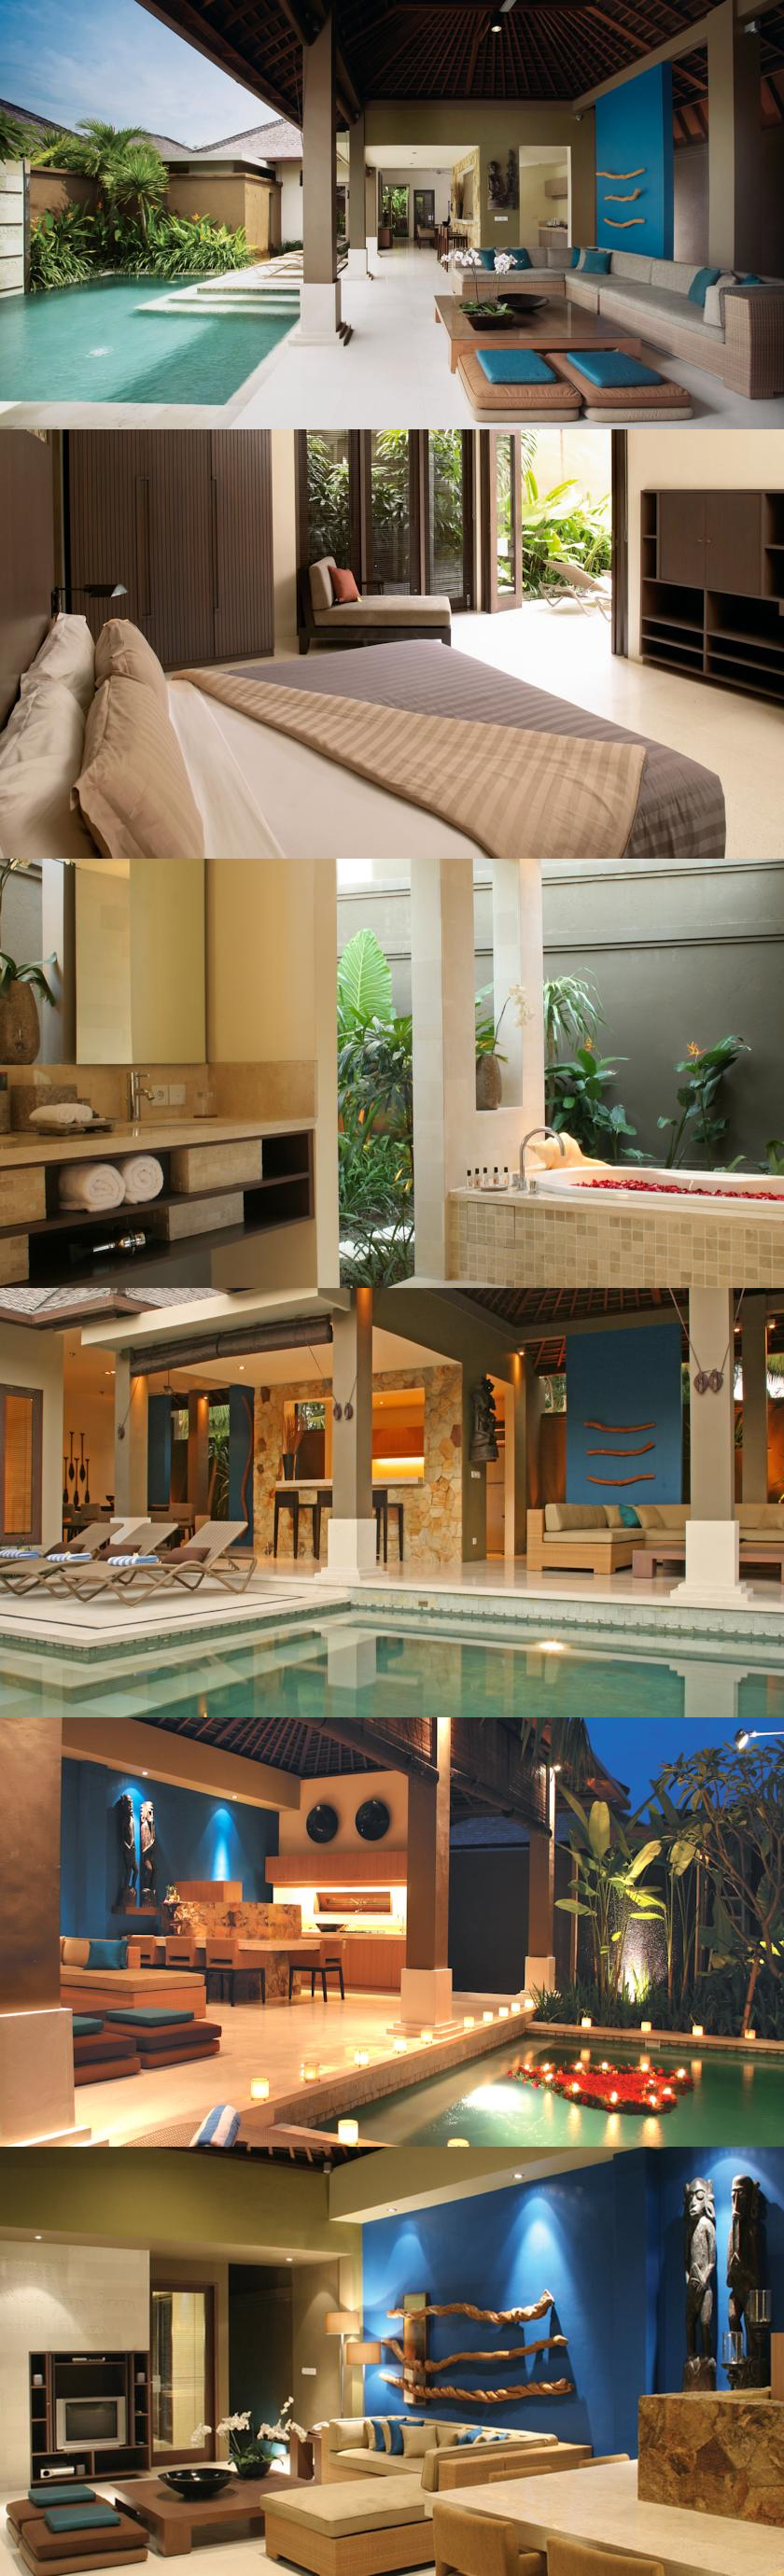 Pin By Find Hotel Deals On Best Jimbaran Hotels And Villas Bali